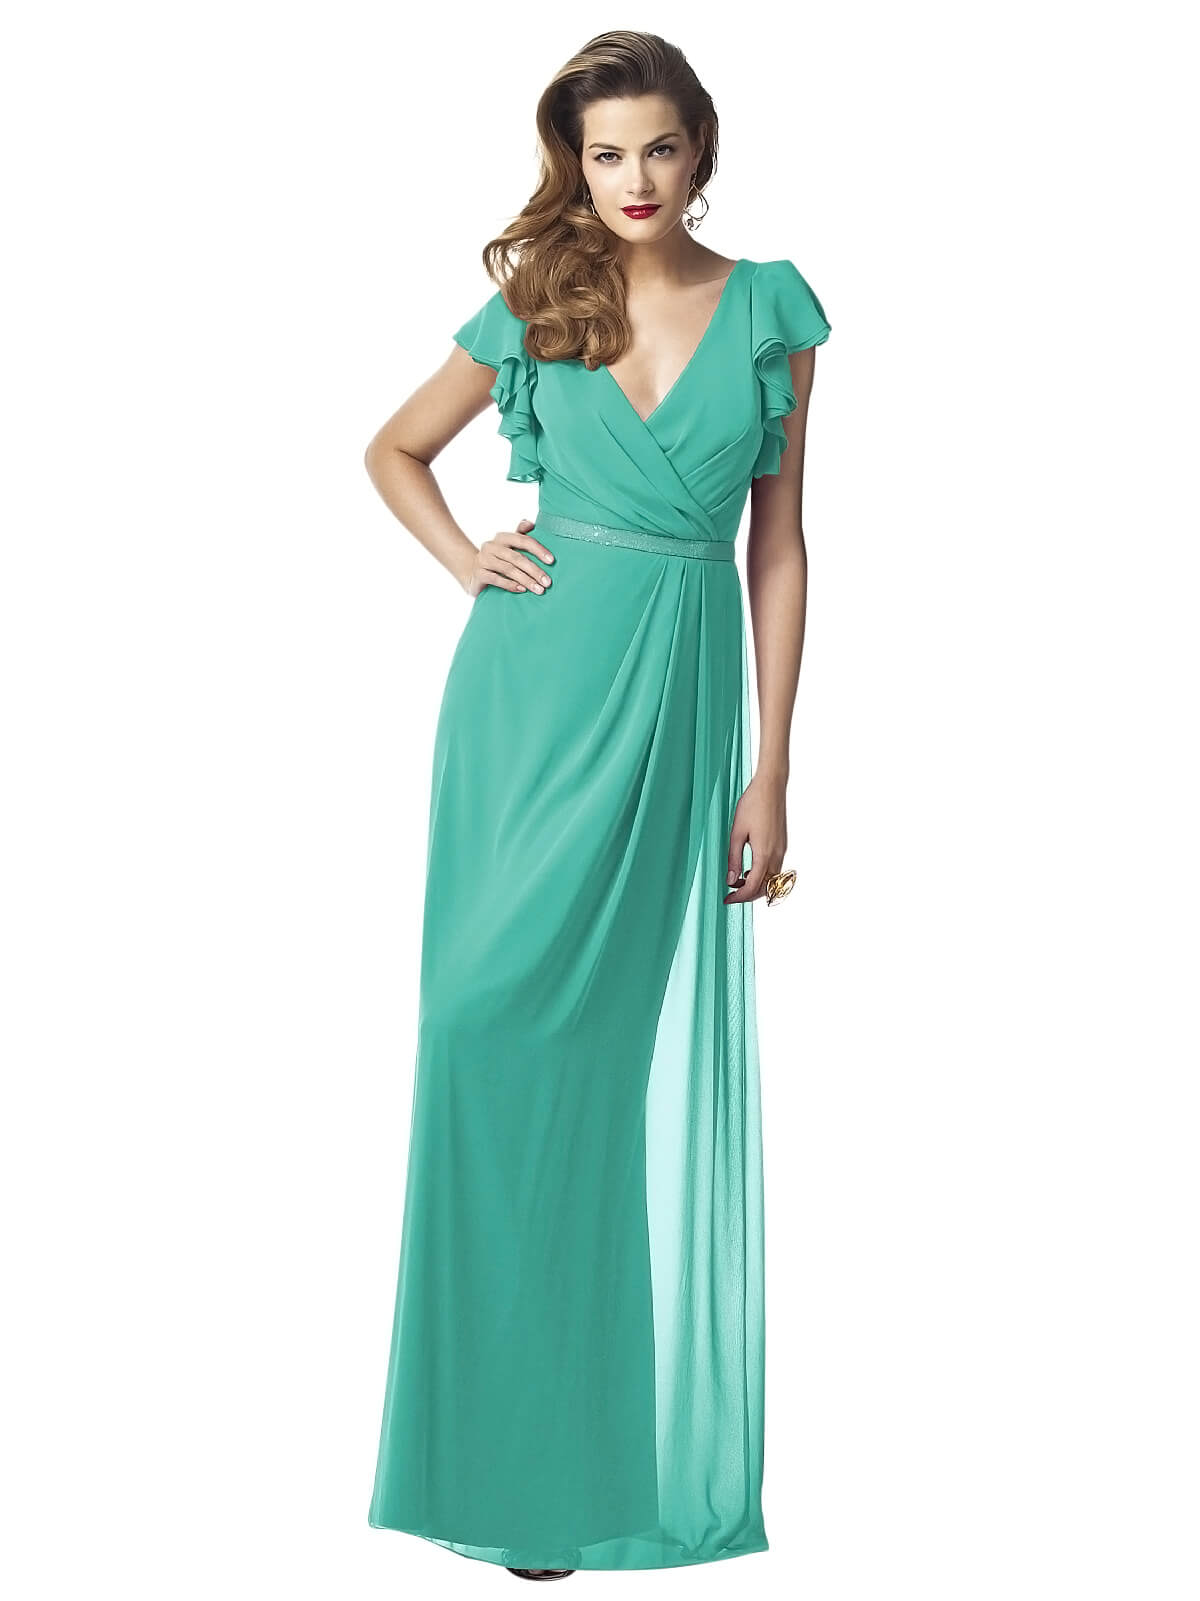 33 Best Picks for Turquoise Bridesmaid Dresses - EverAfterGuide